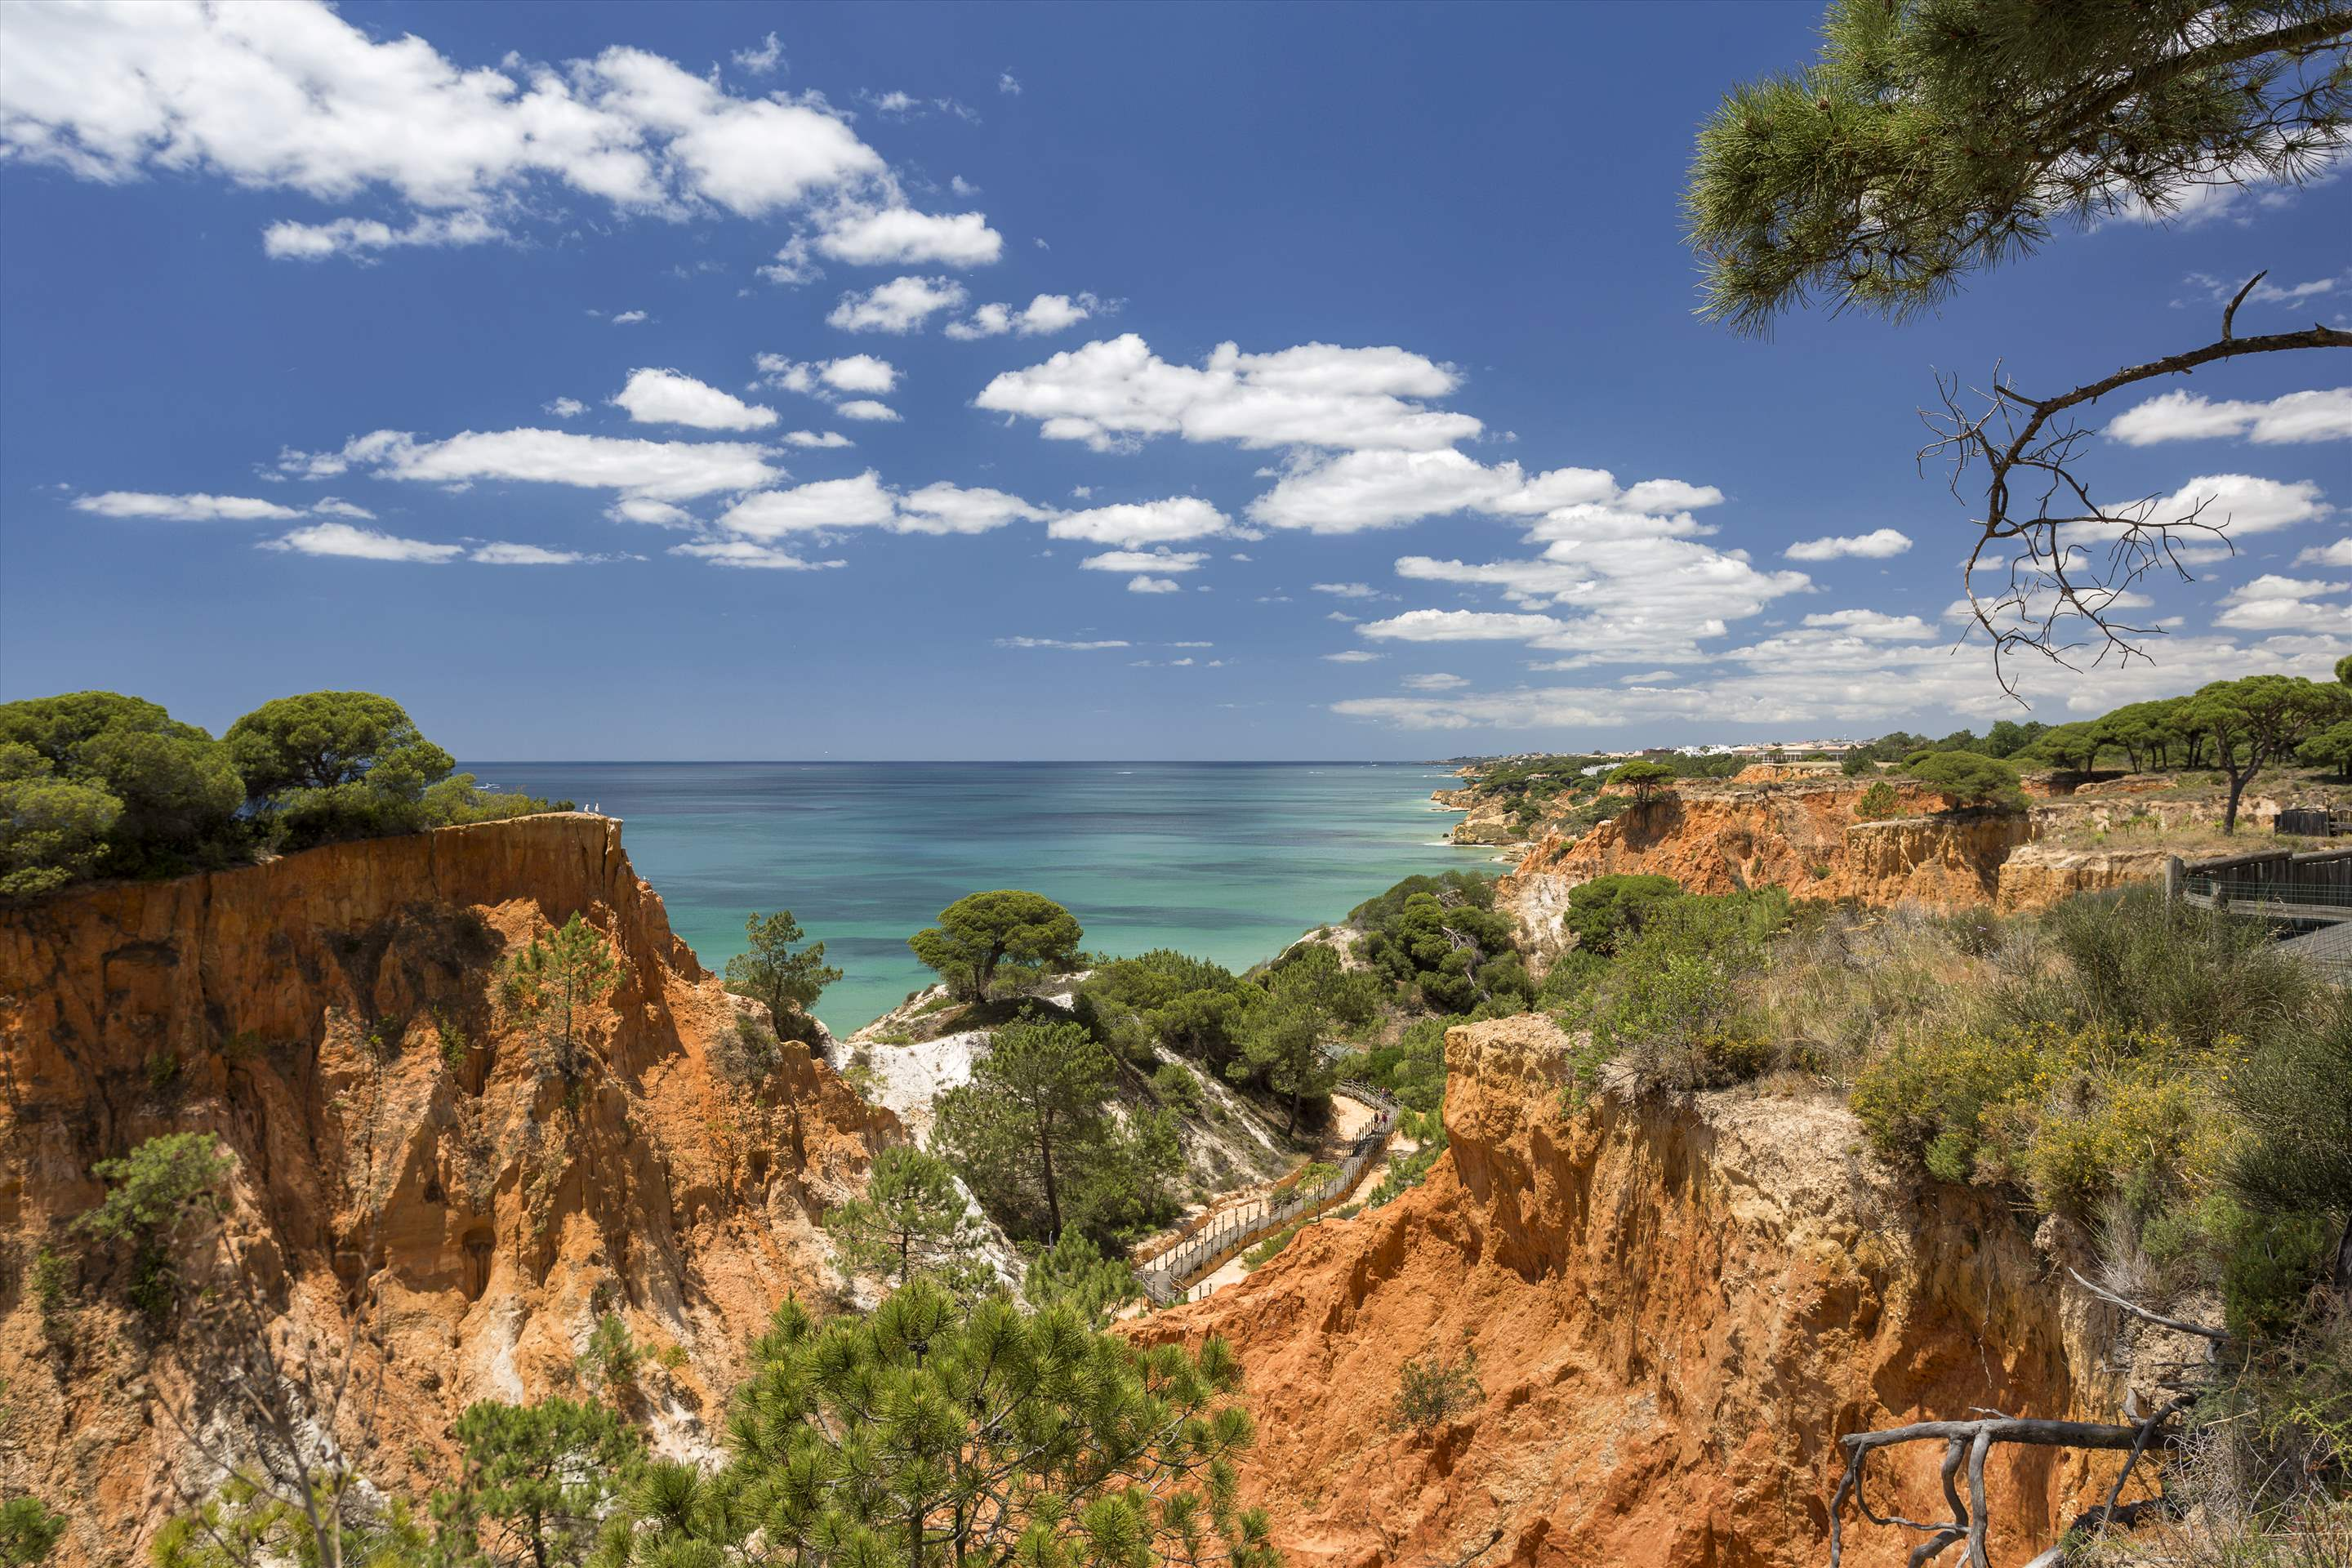 Pine Cliffs Villa Falesia, 4 bedroom rate, main house, 4 bedroom villa in Pine Cliffs Resort, Algarve Photo #25